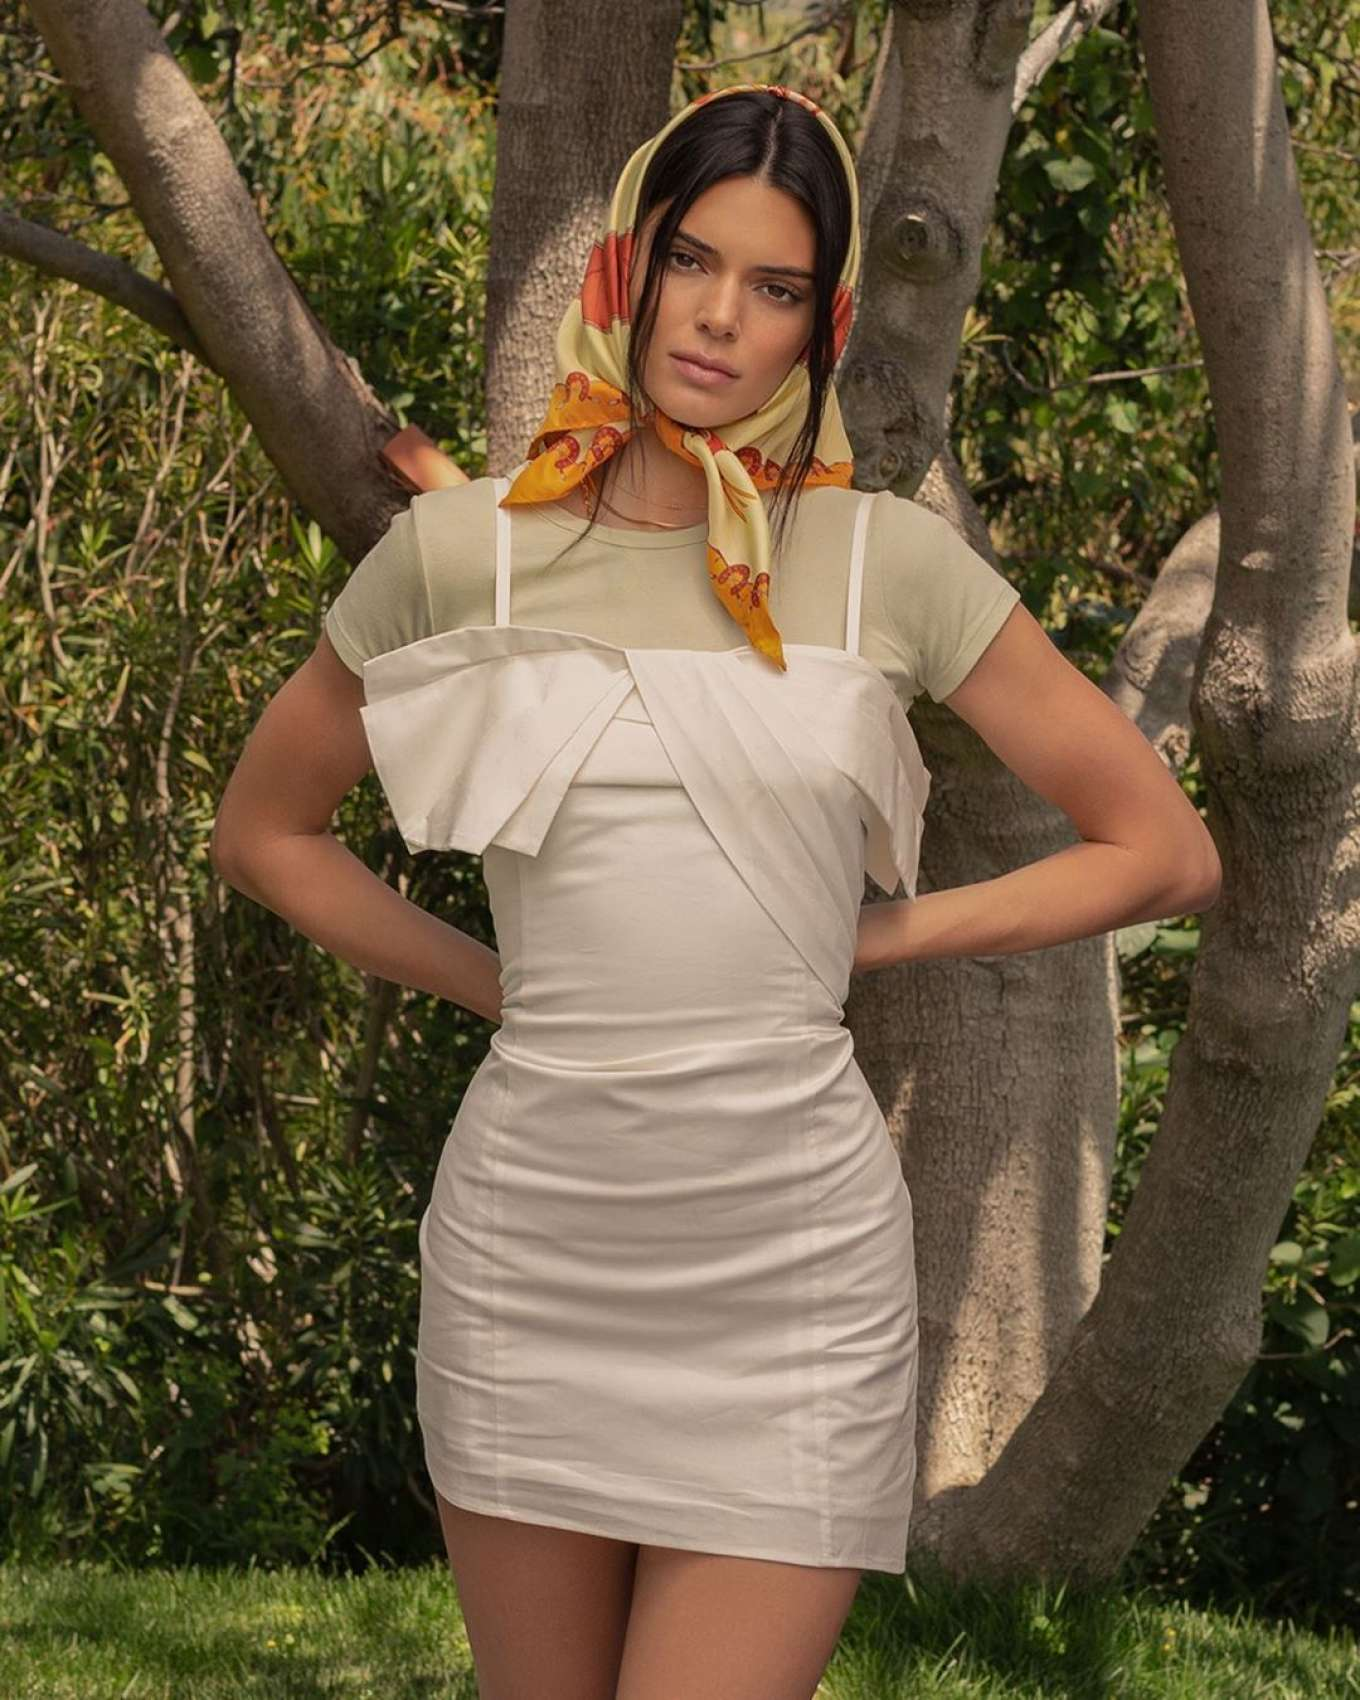 Kendall Jenner 2019 : Kendall Jenner – Kendall Kylie Summer Collection 2019-03